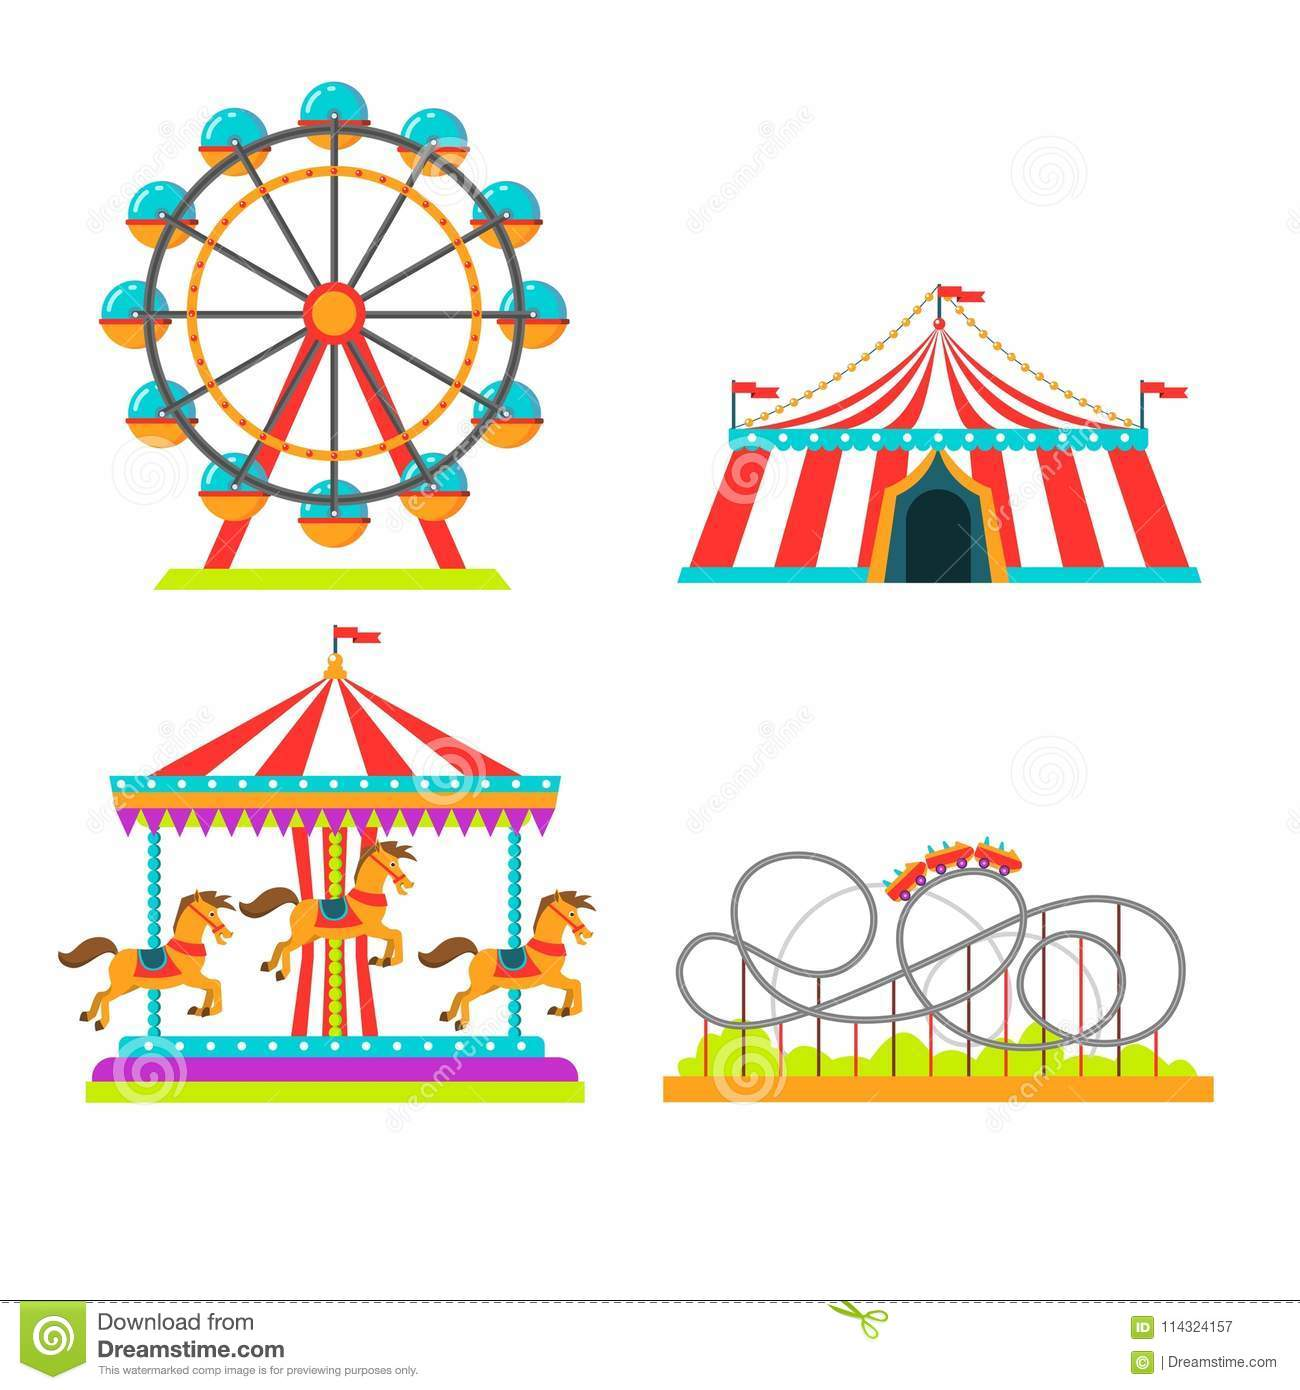 Amusement park vector illustration of attractions rides, circus tent, merry-go-round carousel and observation wheel or